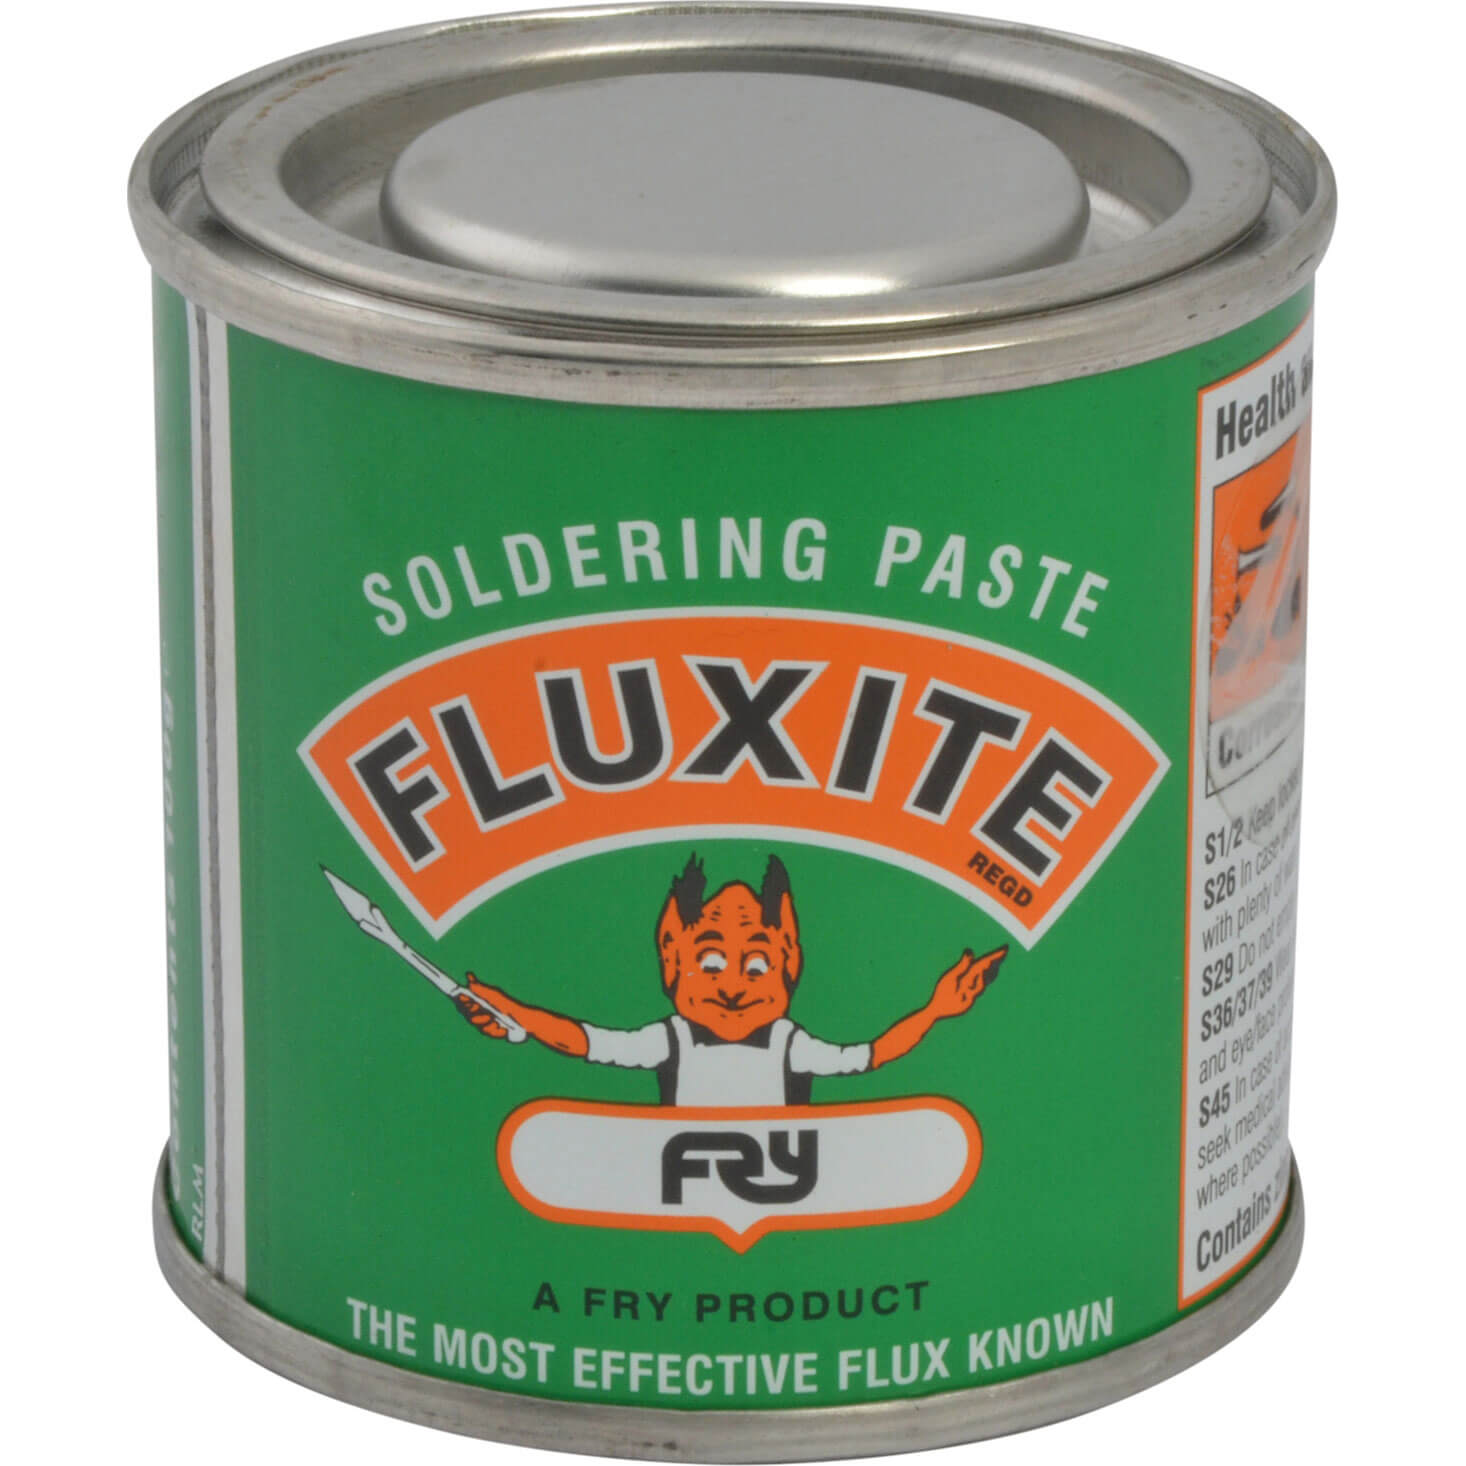 Image of Fluxite Tin Soldering Paste 100g